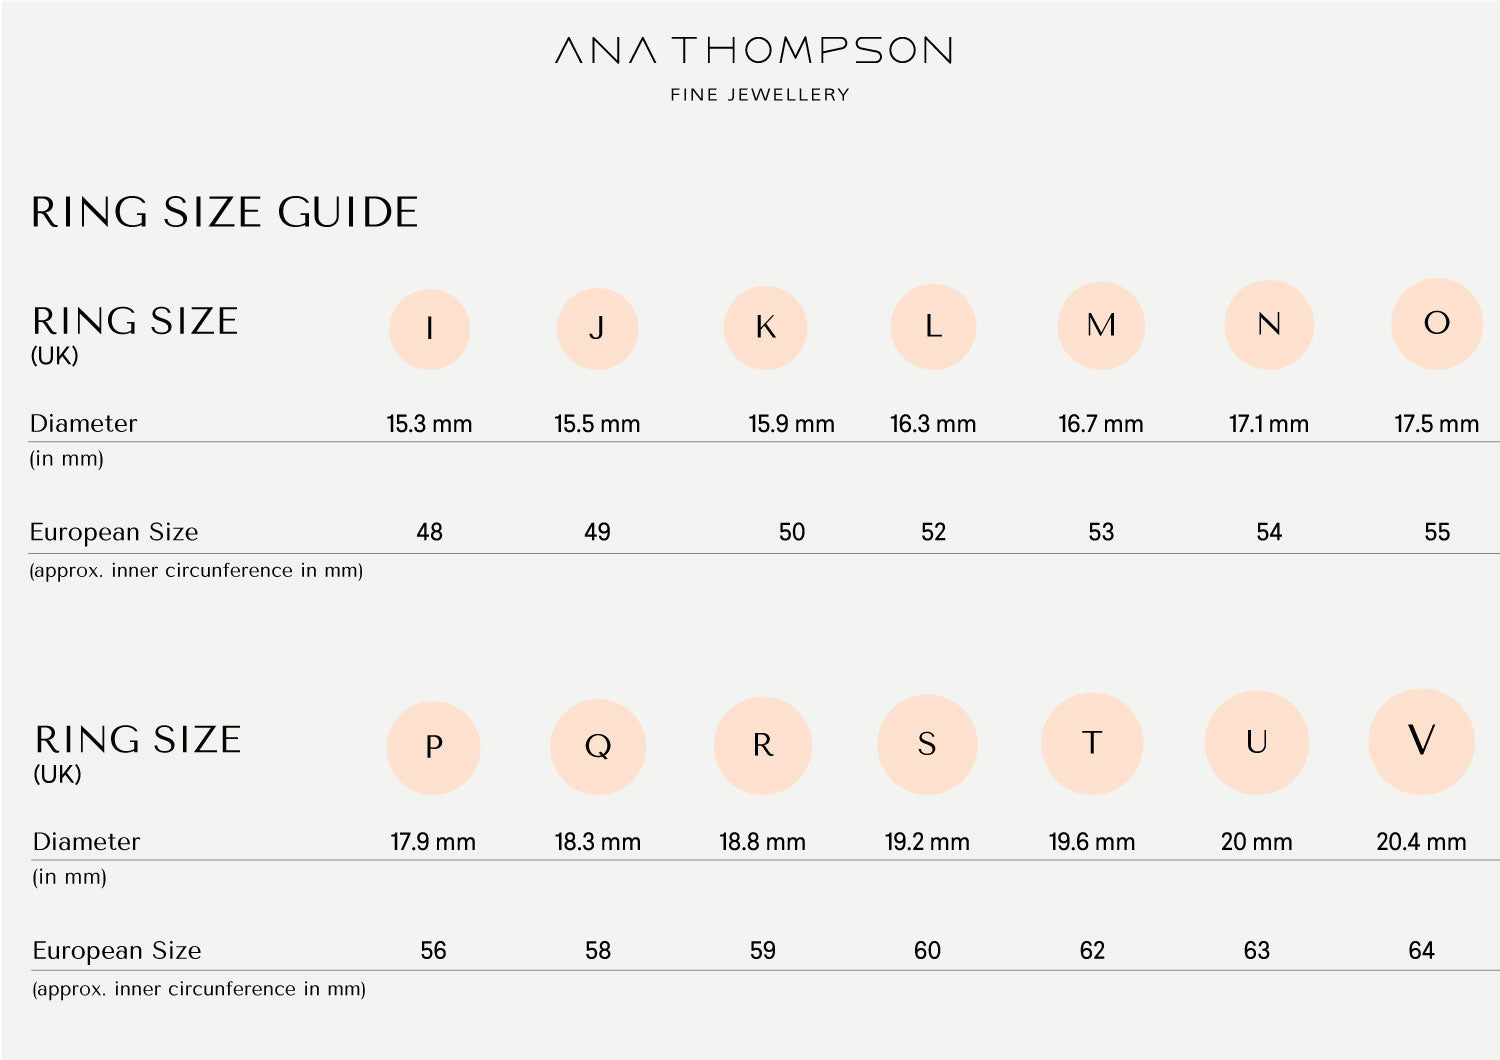 Ana Thompson Fine Jewellery Ring Size Guide